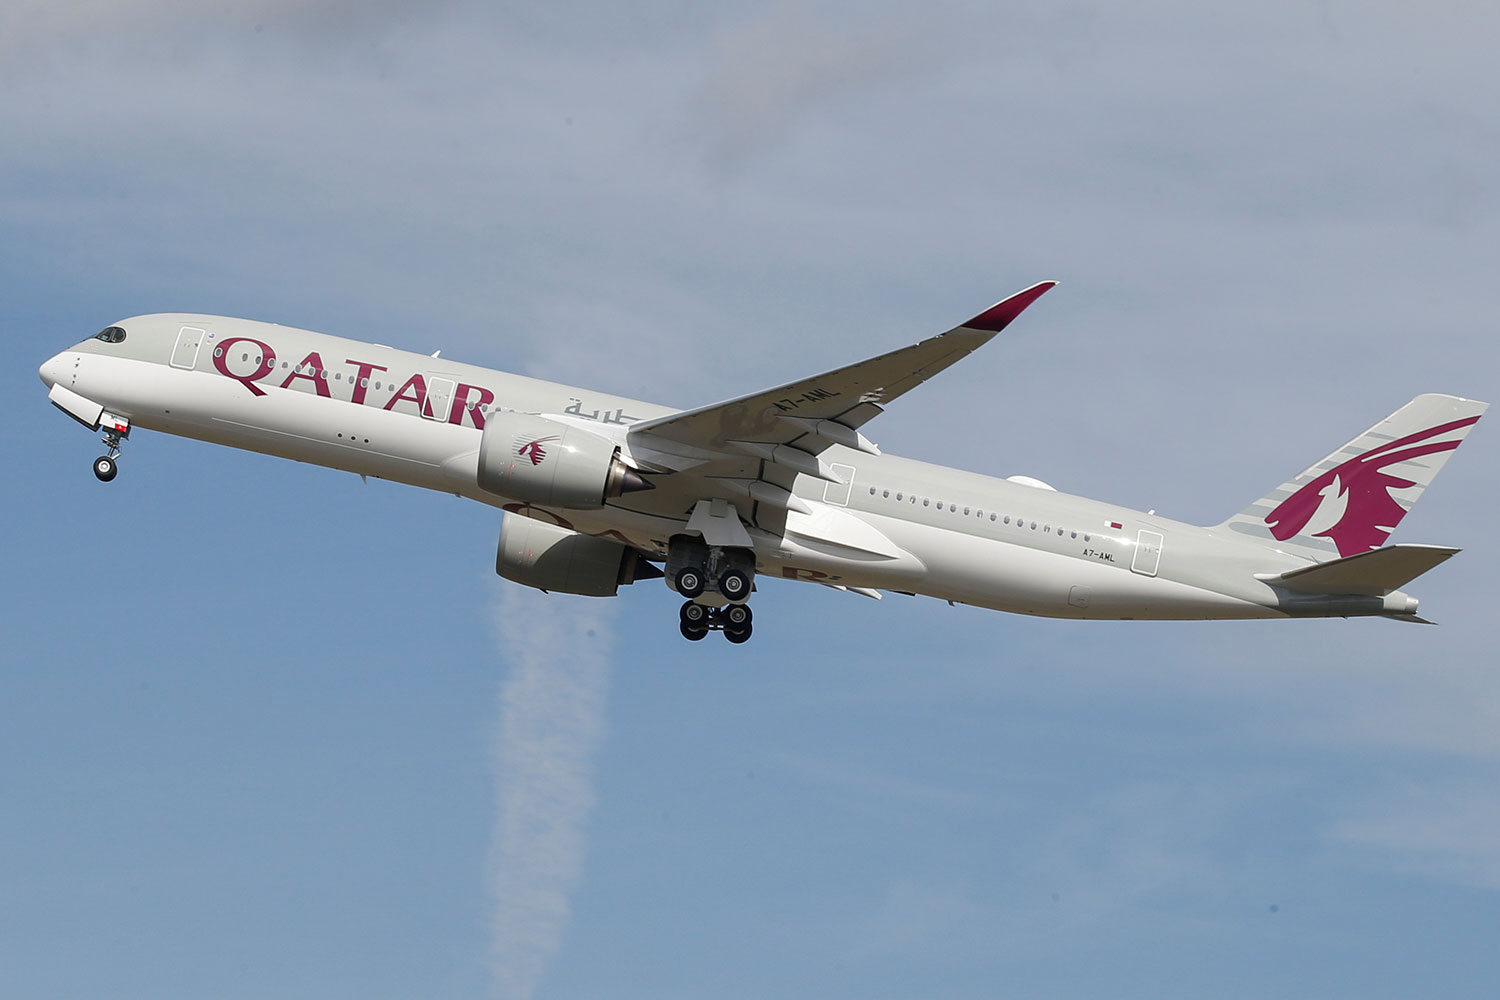 The photo shows a Qatar Airways jetliner in takeoff against a bright blue sky.